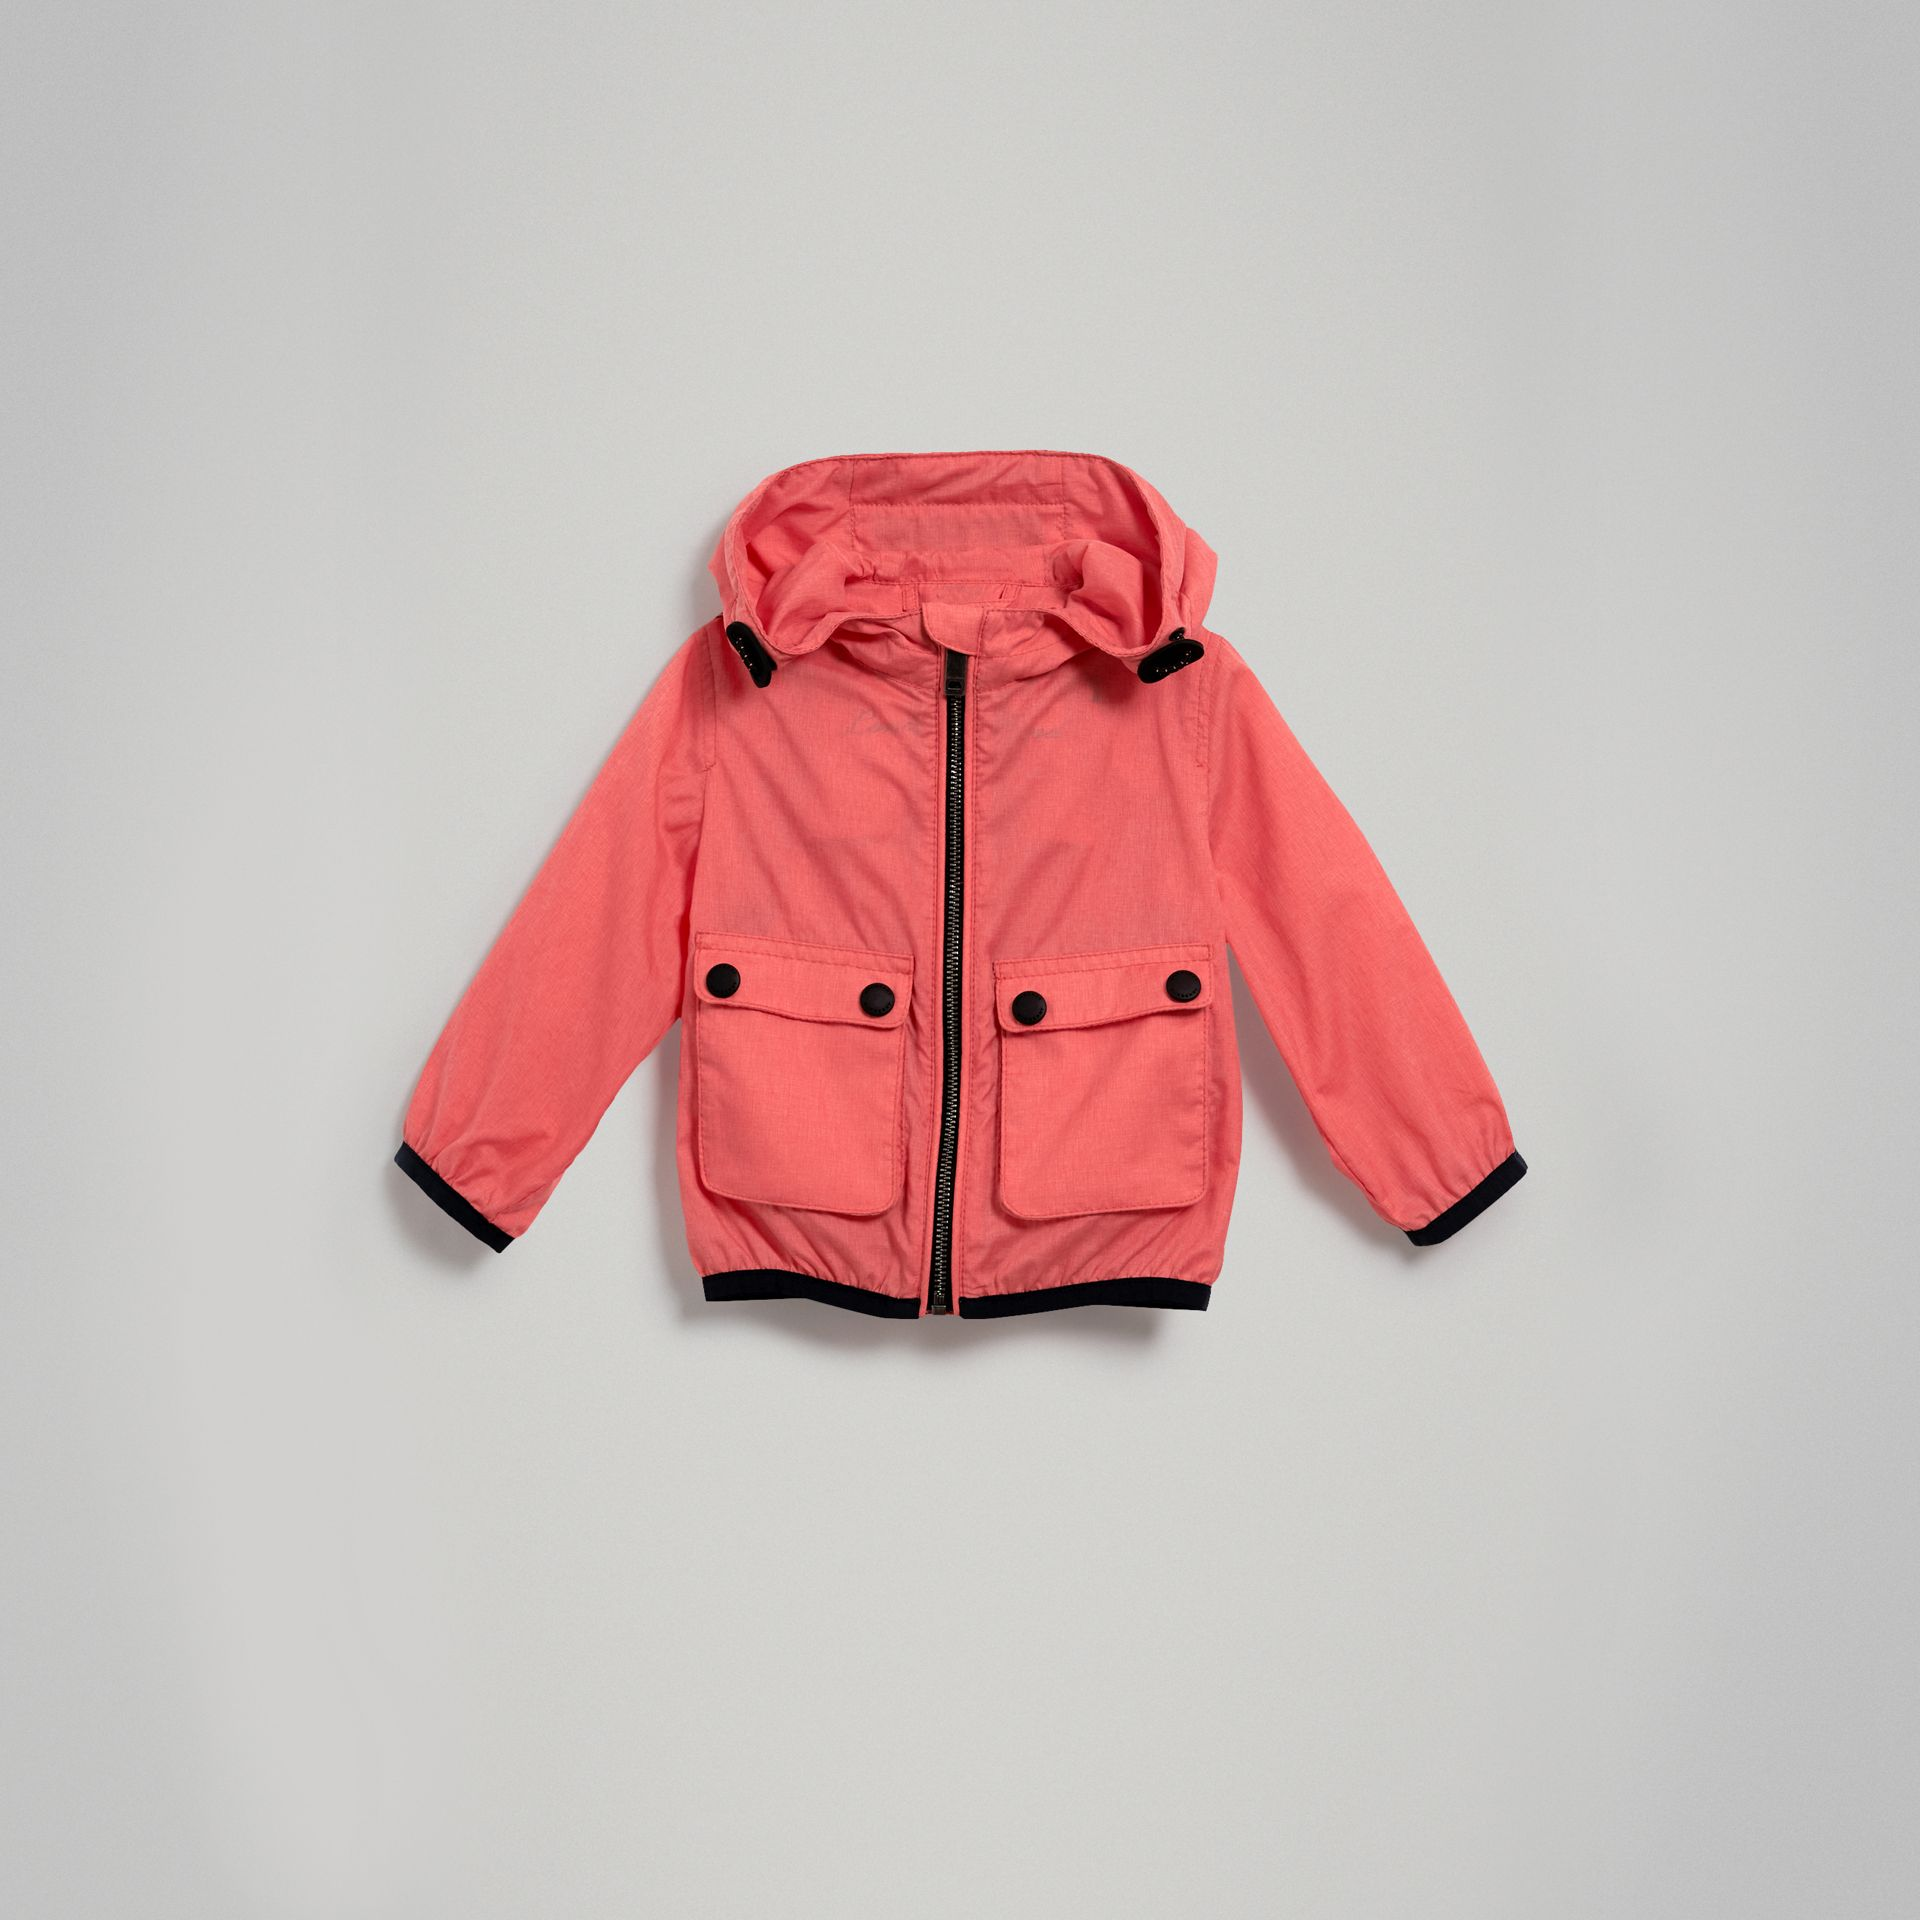 Showerproof Hooded Jacket in Bright Coral Pink | Burberry - gallery image 0